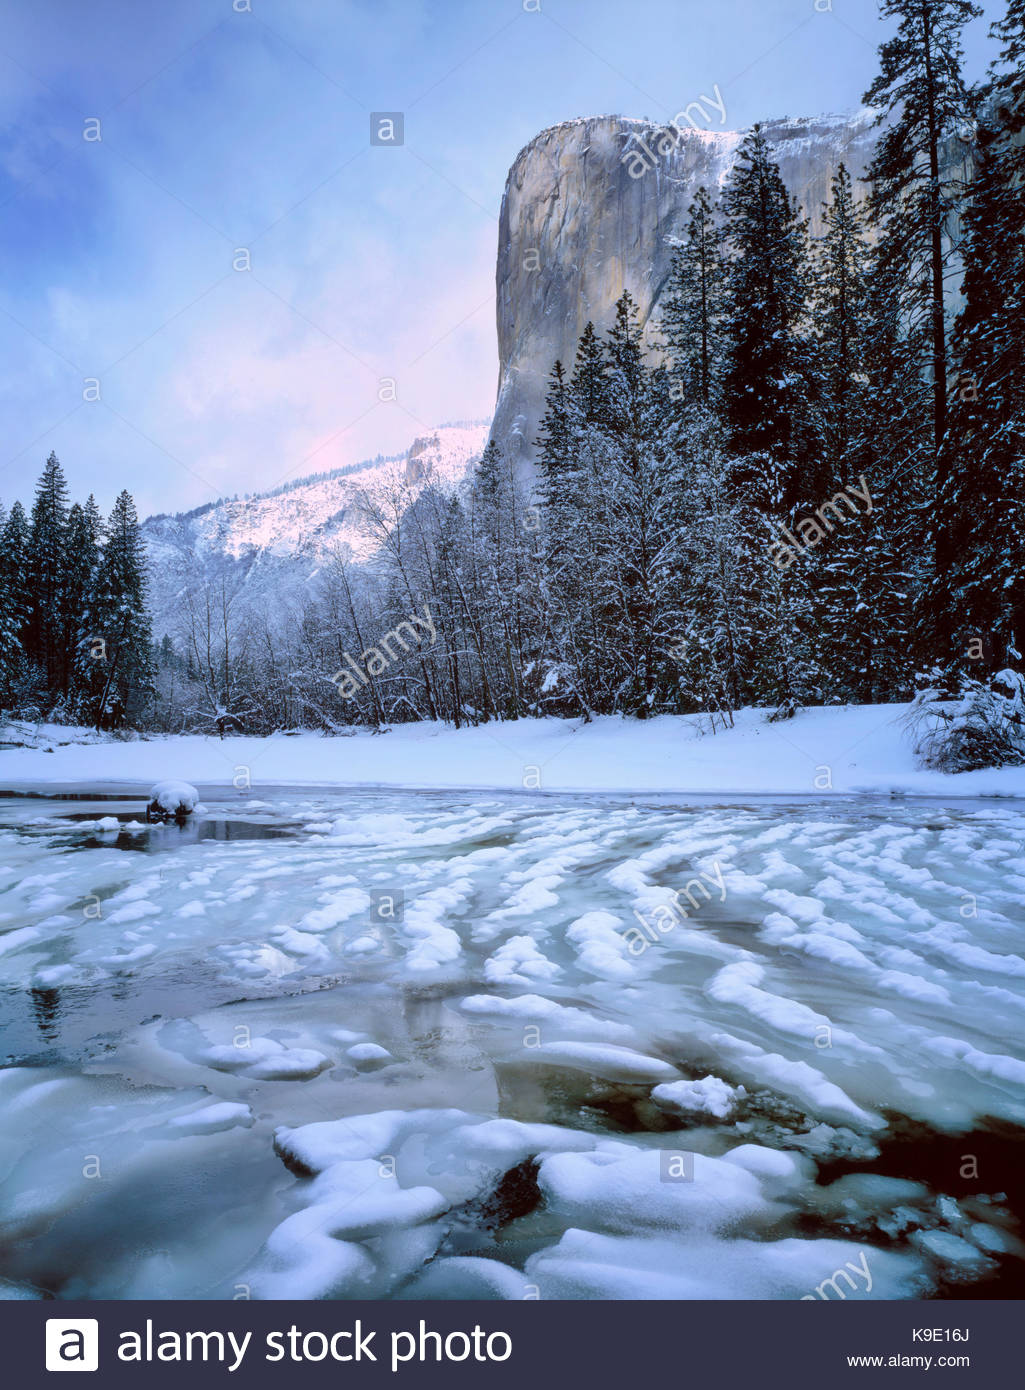 El Capitan and the Merced River in Winter, Yosemite National Park, California - Stock Image